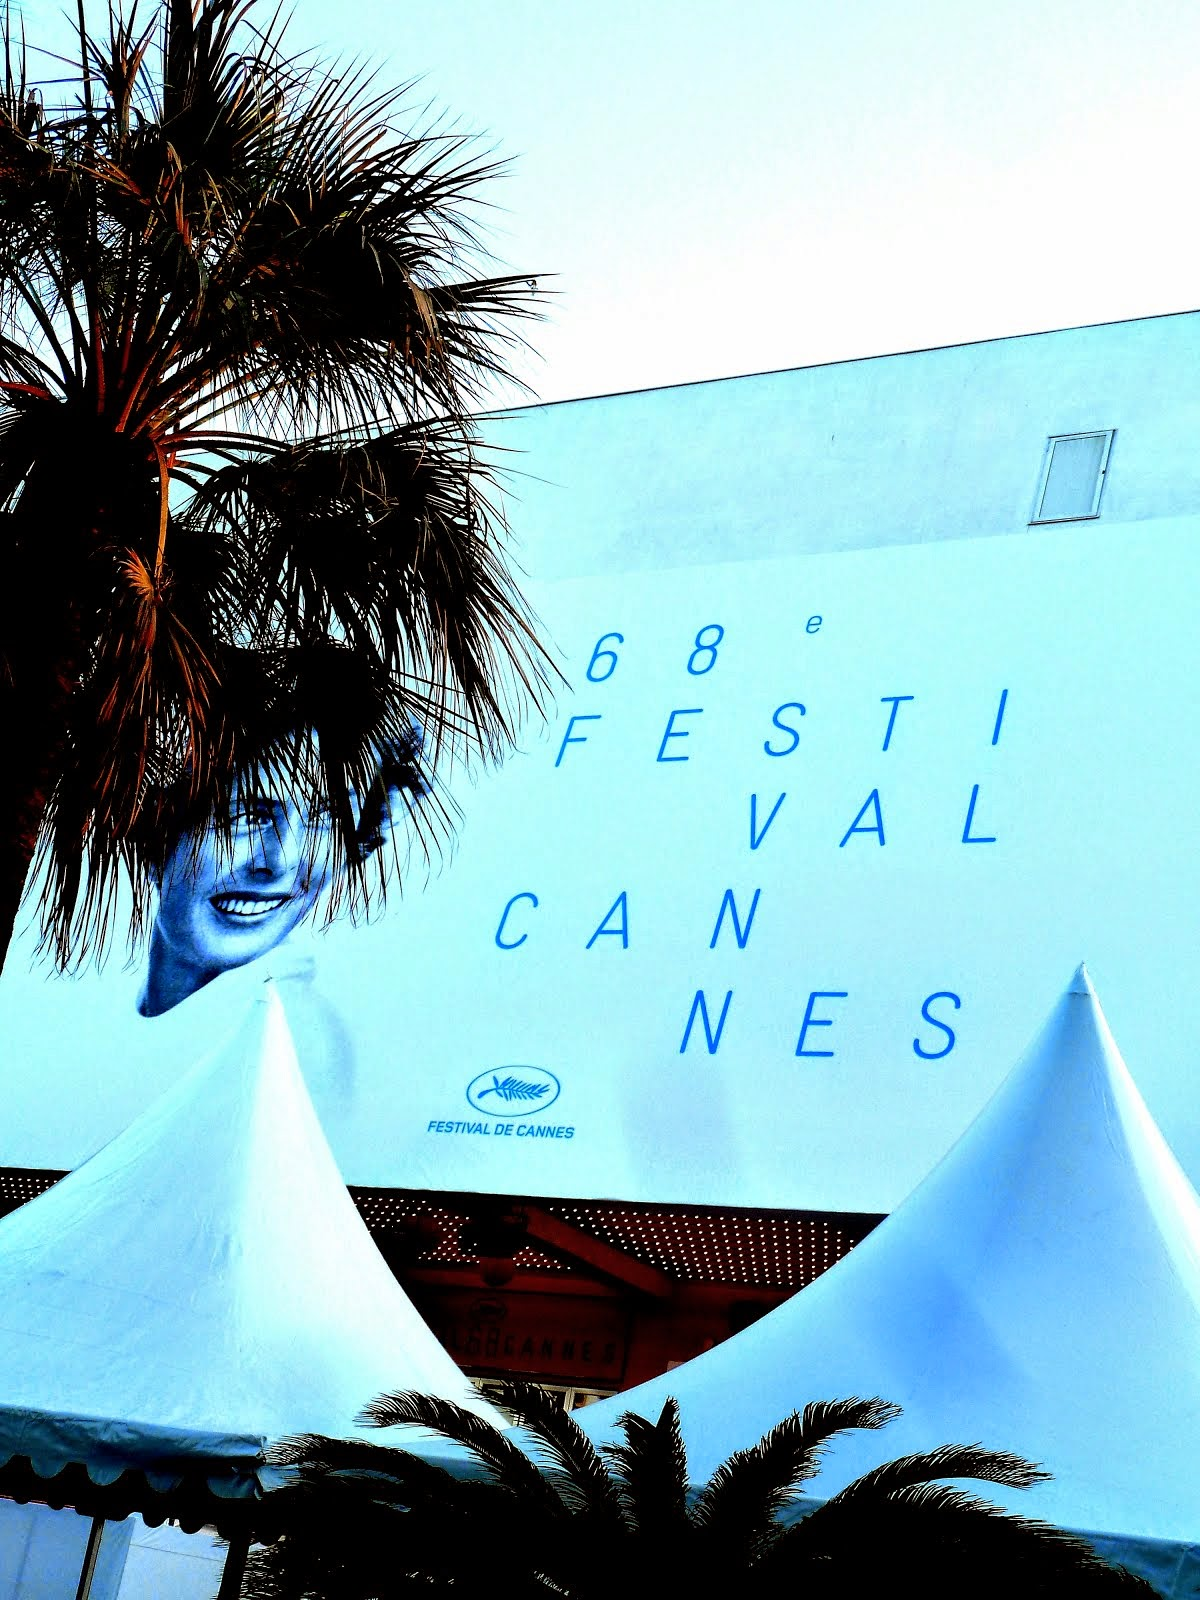 68th Cannes Film Festival 2015